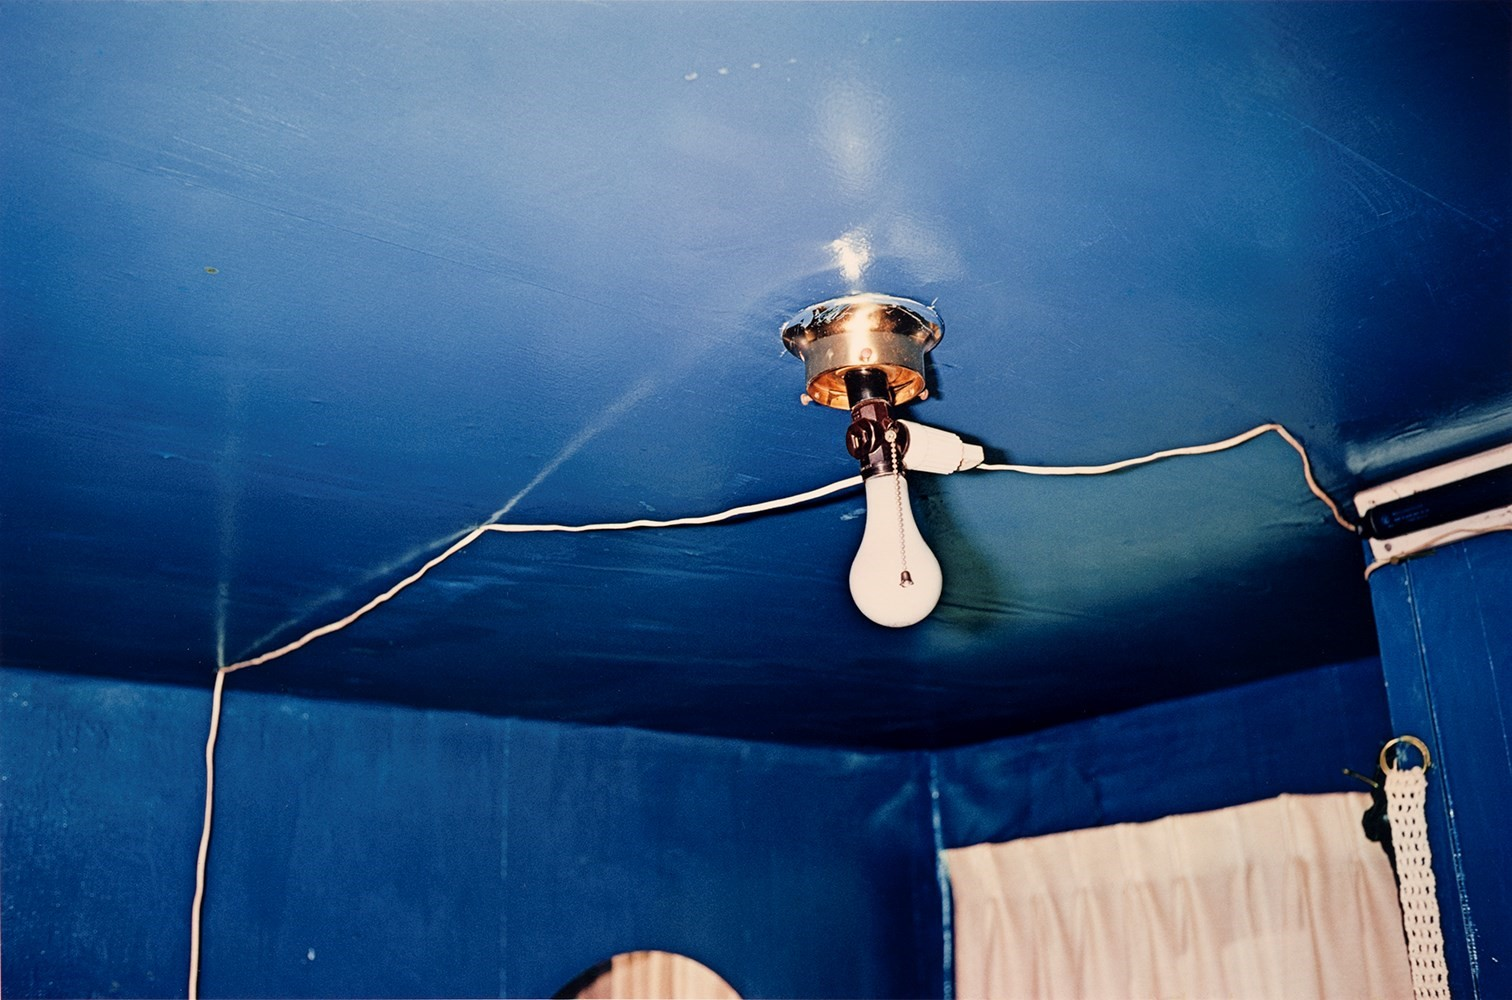 Untitled, 1970-1973 by William Eggleston